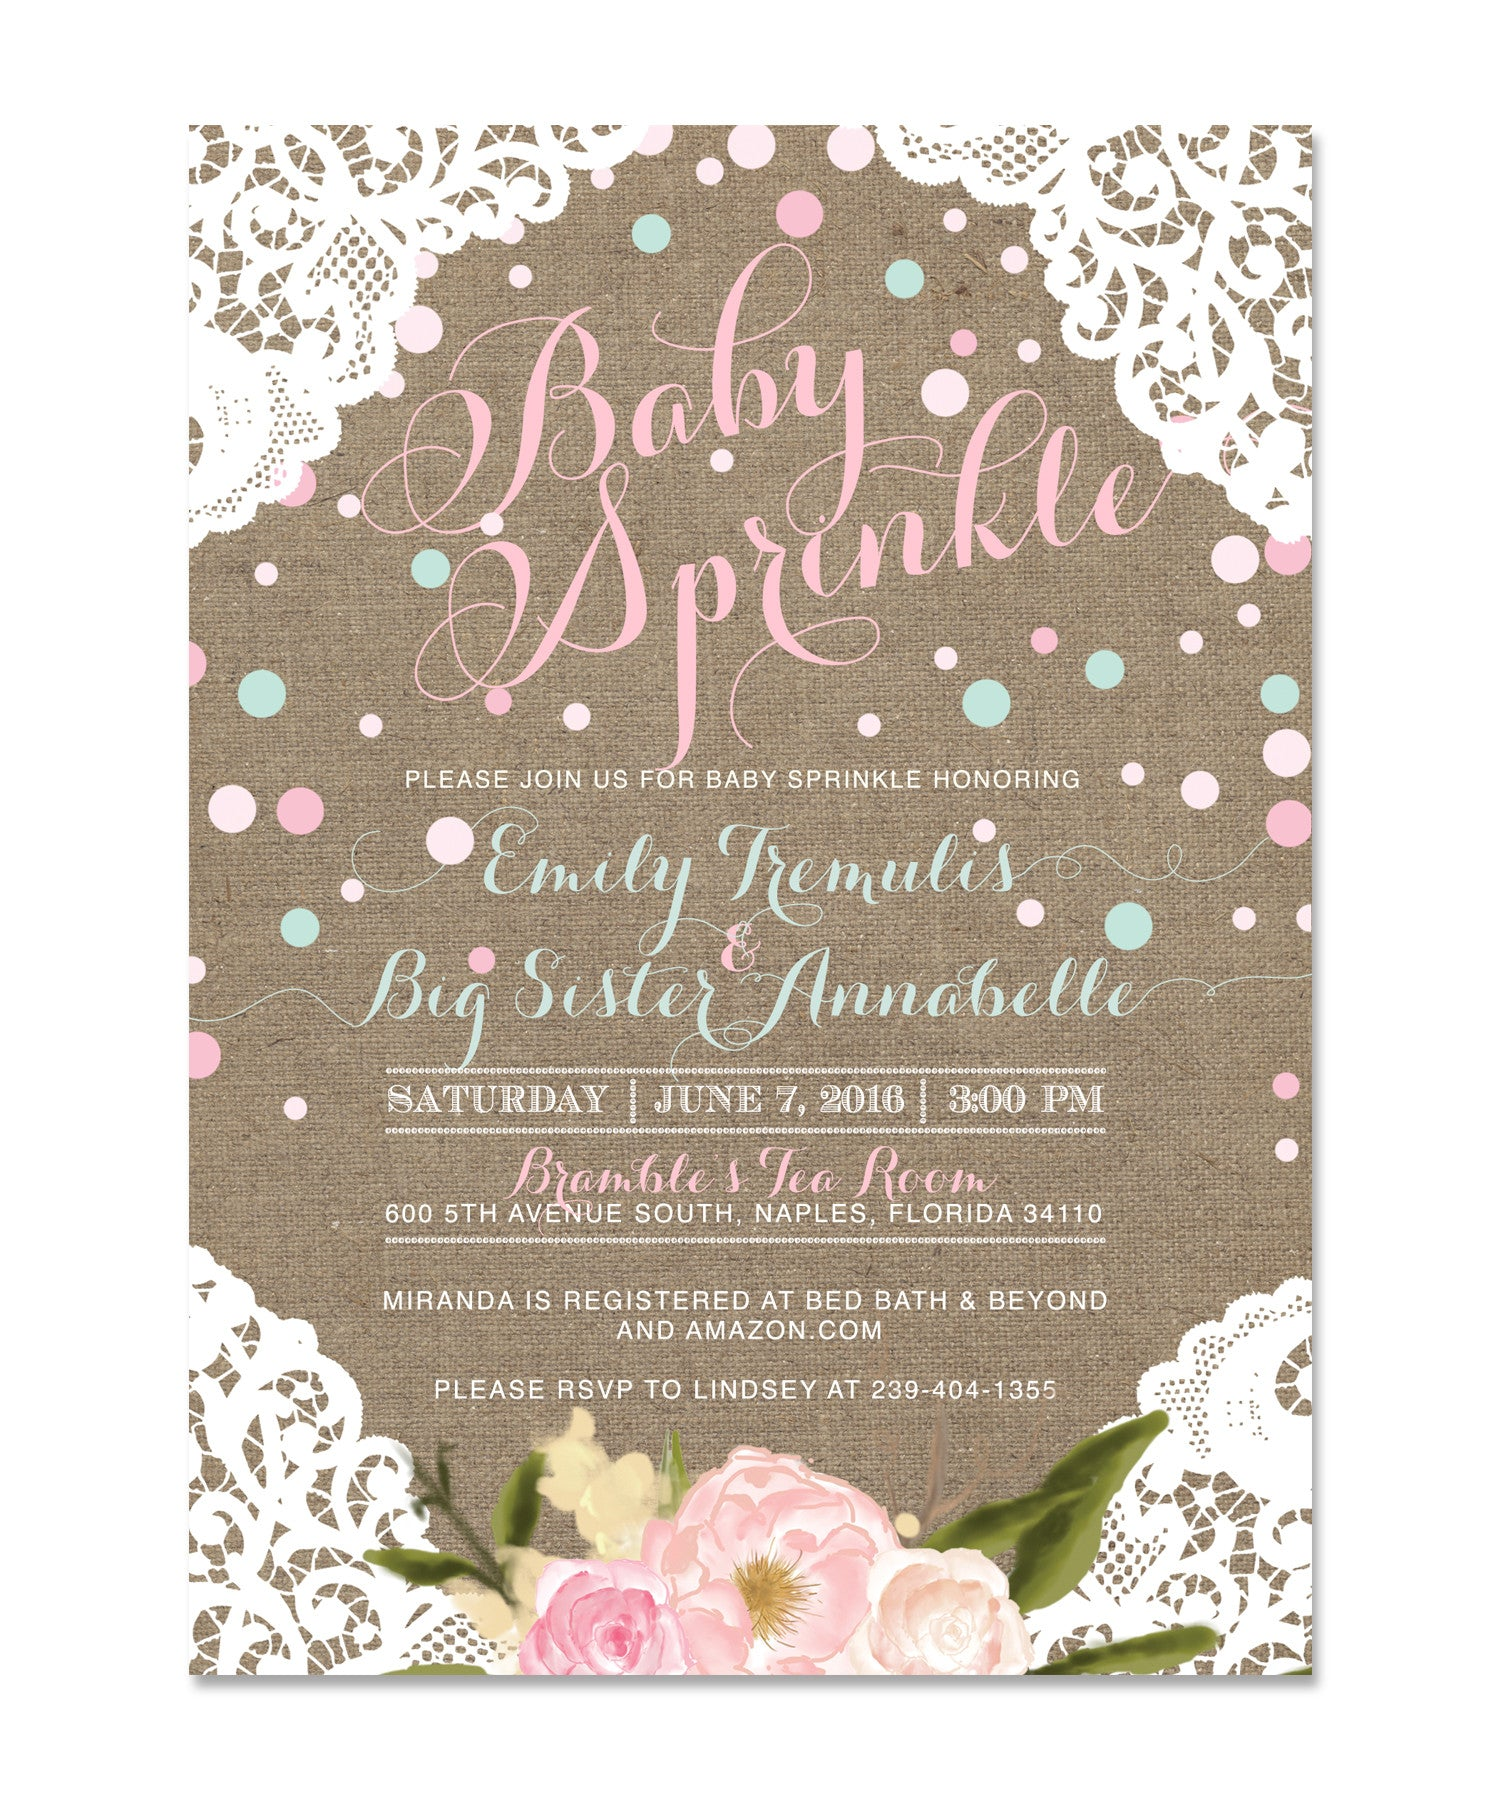 Addie: Shabby Chic Baby Sprinkle Invitation with Lace, Flowers ...